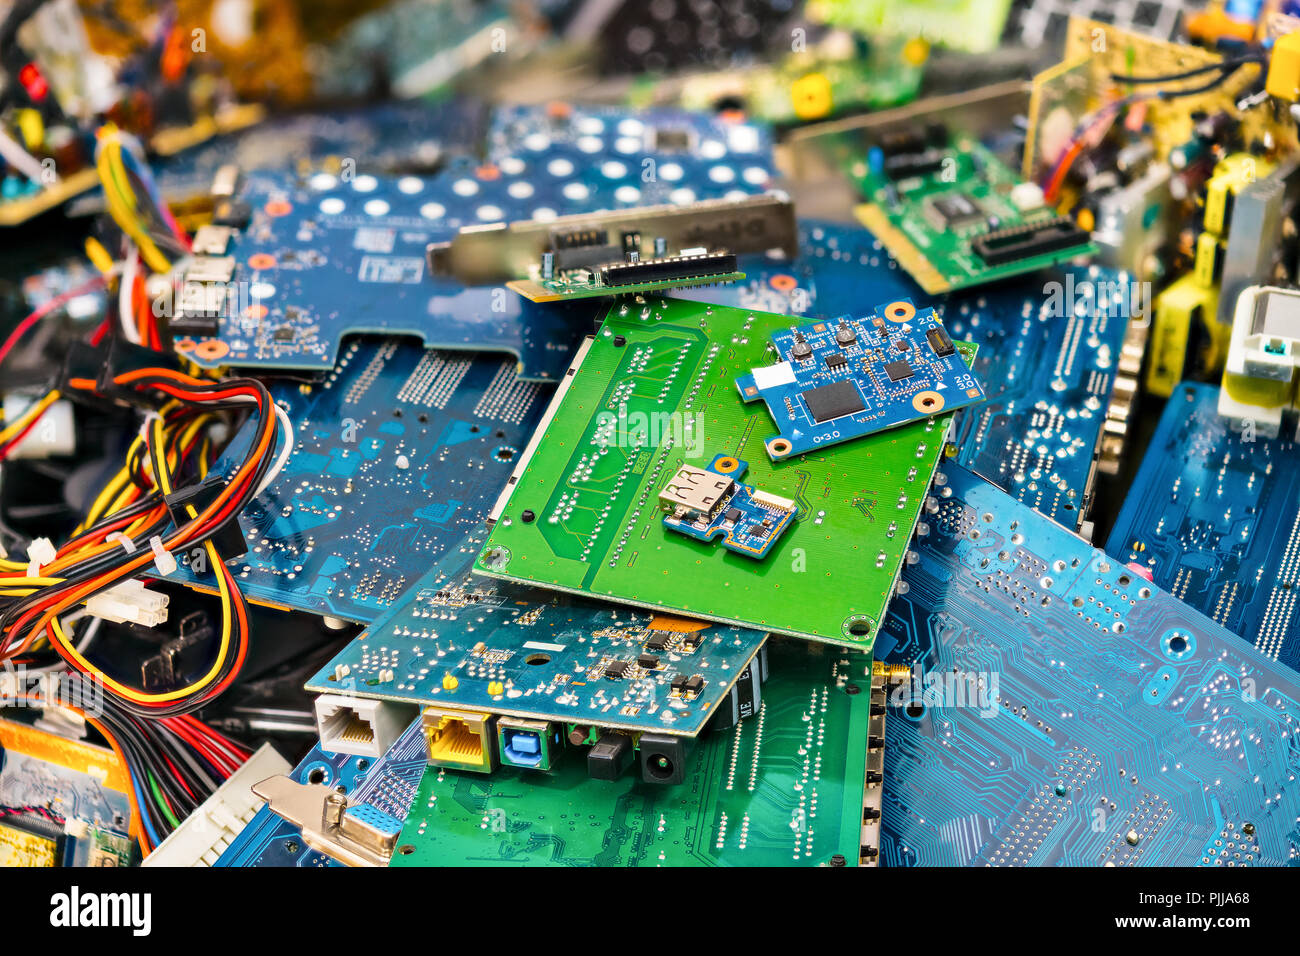 E-waste heap. Discarded laptop parts. Connectors, PCB, notebook cards. Colorful blurry background. PC components. Electronic waste disposal, industry. - Stock Image